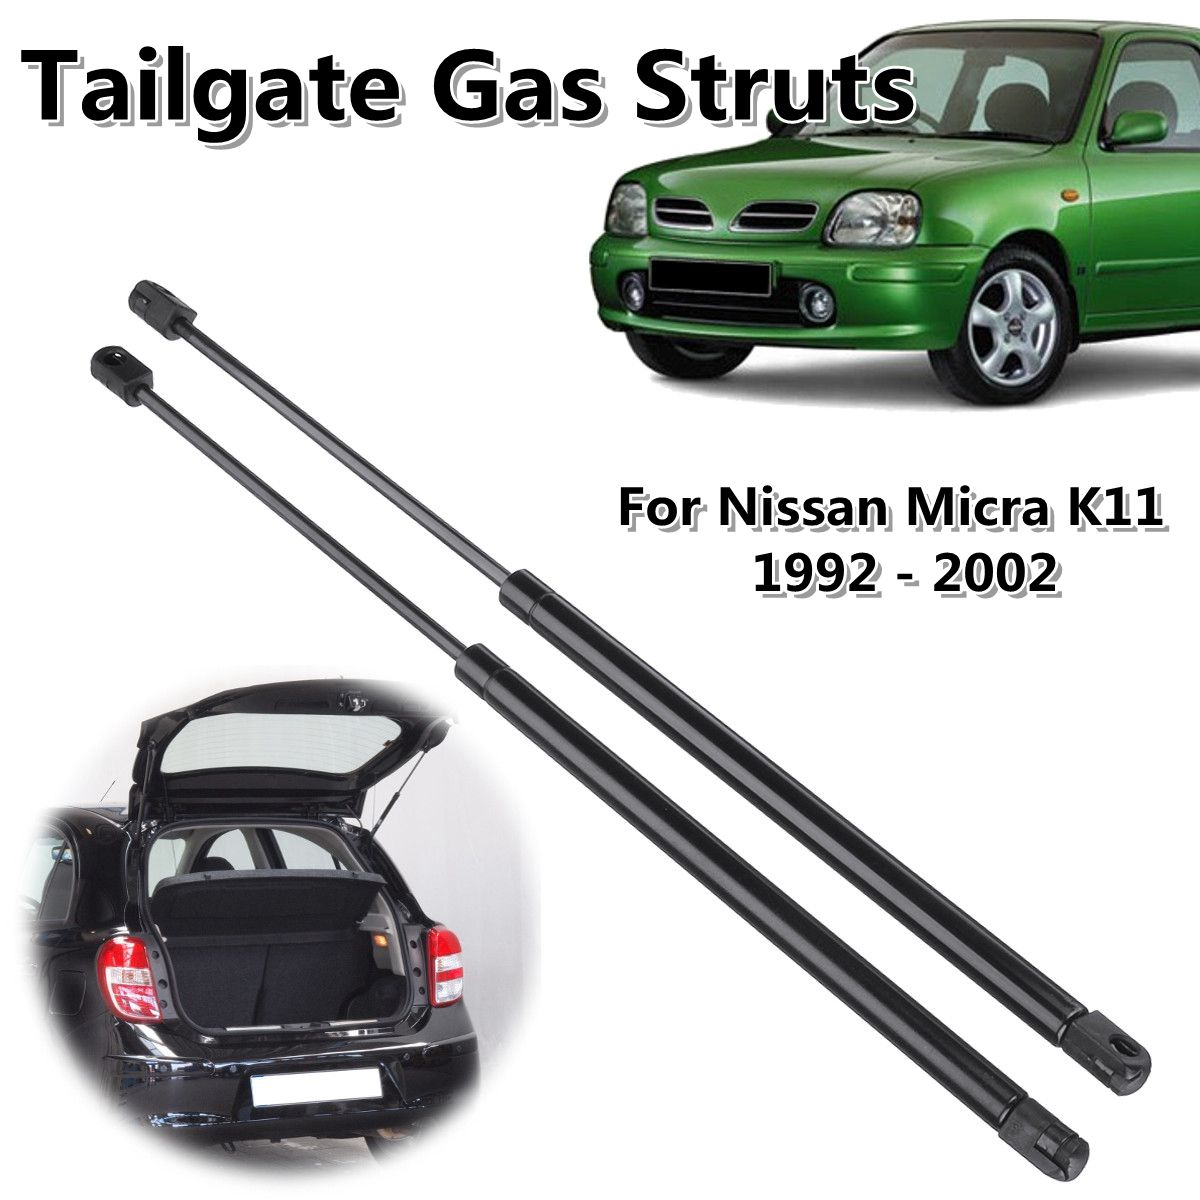 2pcs Rear Tailgate Truck Boot Gas Struts Support For Nissan Micra K11 1992-2002 904504F111 904504F110